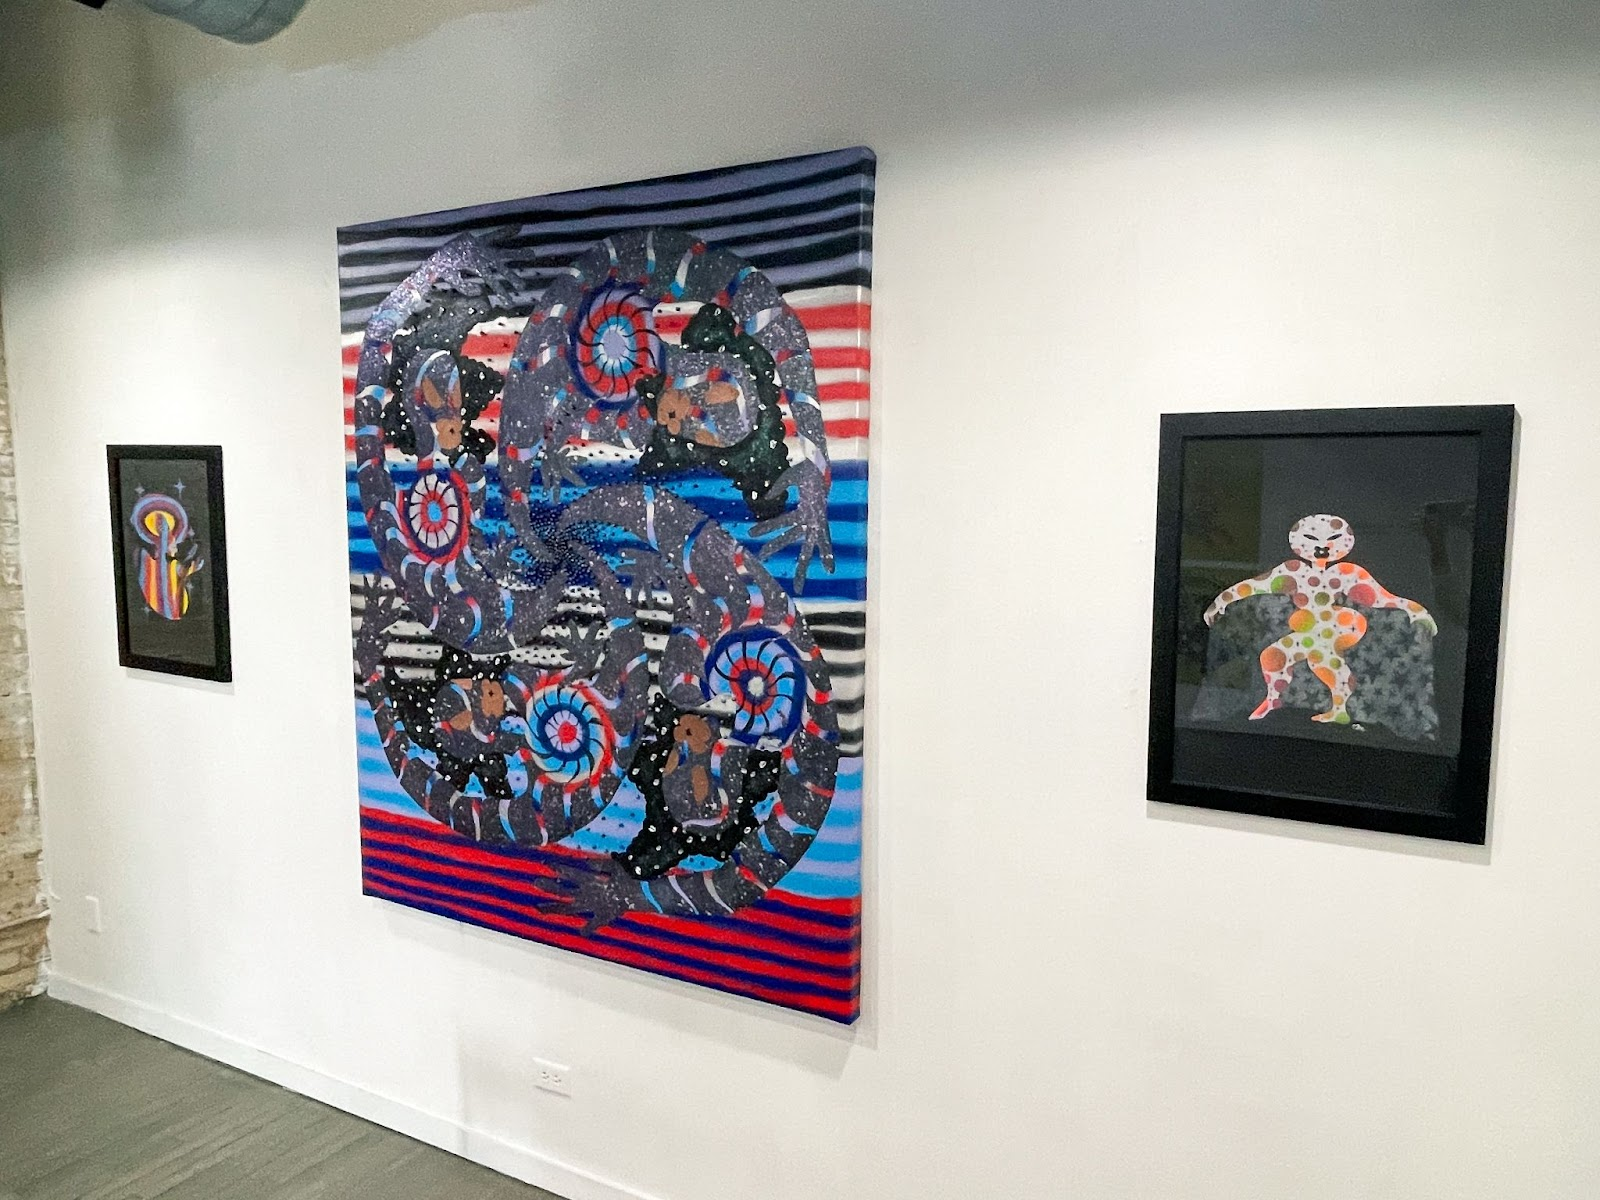 """Image: An installation view of won't you celebrate with me with three pieces in a row. The middle piece is """"Spinning Satellites"""" by Erin LeAnn Mitchell. It is a large, colorful abstract piece with horizontal stripes in the background and swirls in the foreground. The two pieces on either side of it are of colorful figures on a black background. Courtesy of the artist and FLXST Contemporary."""